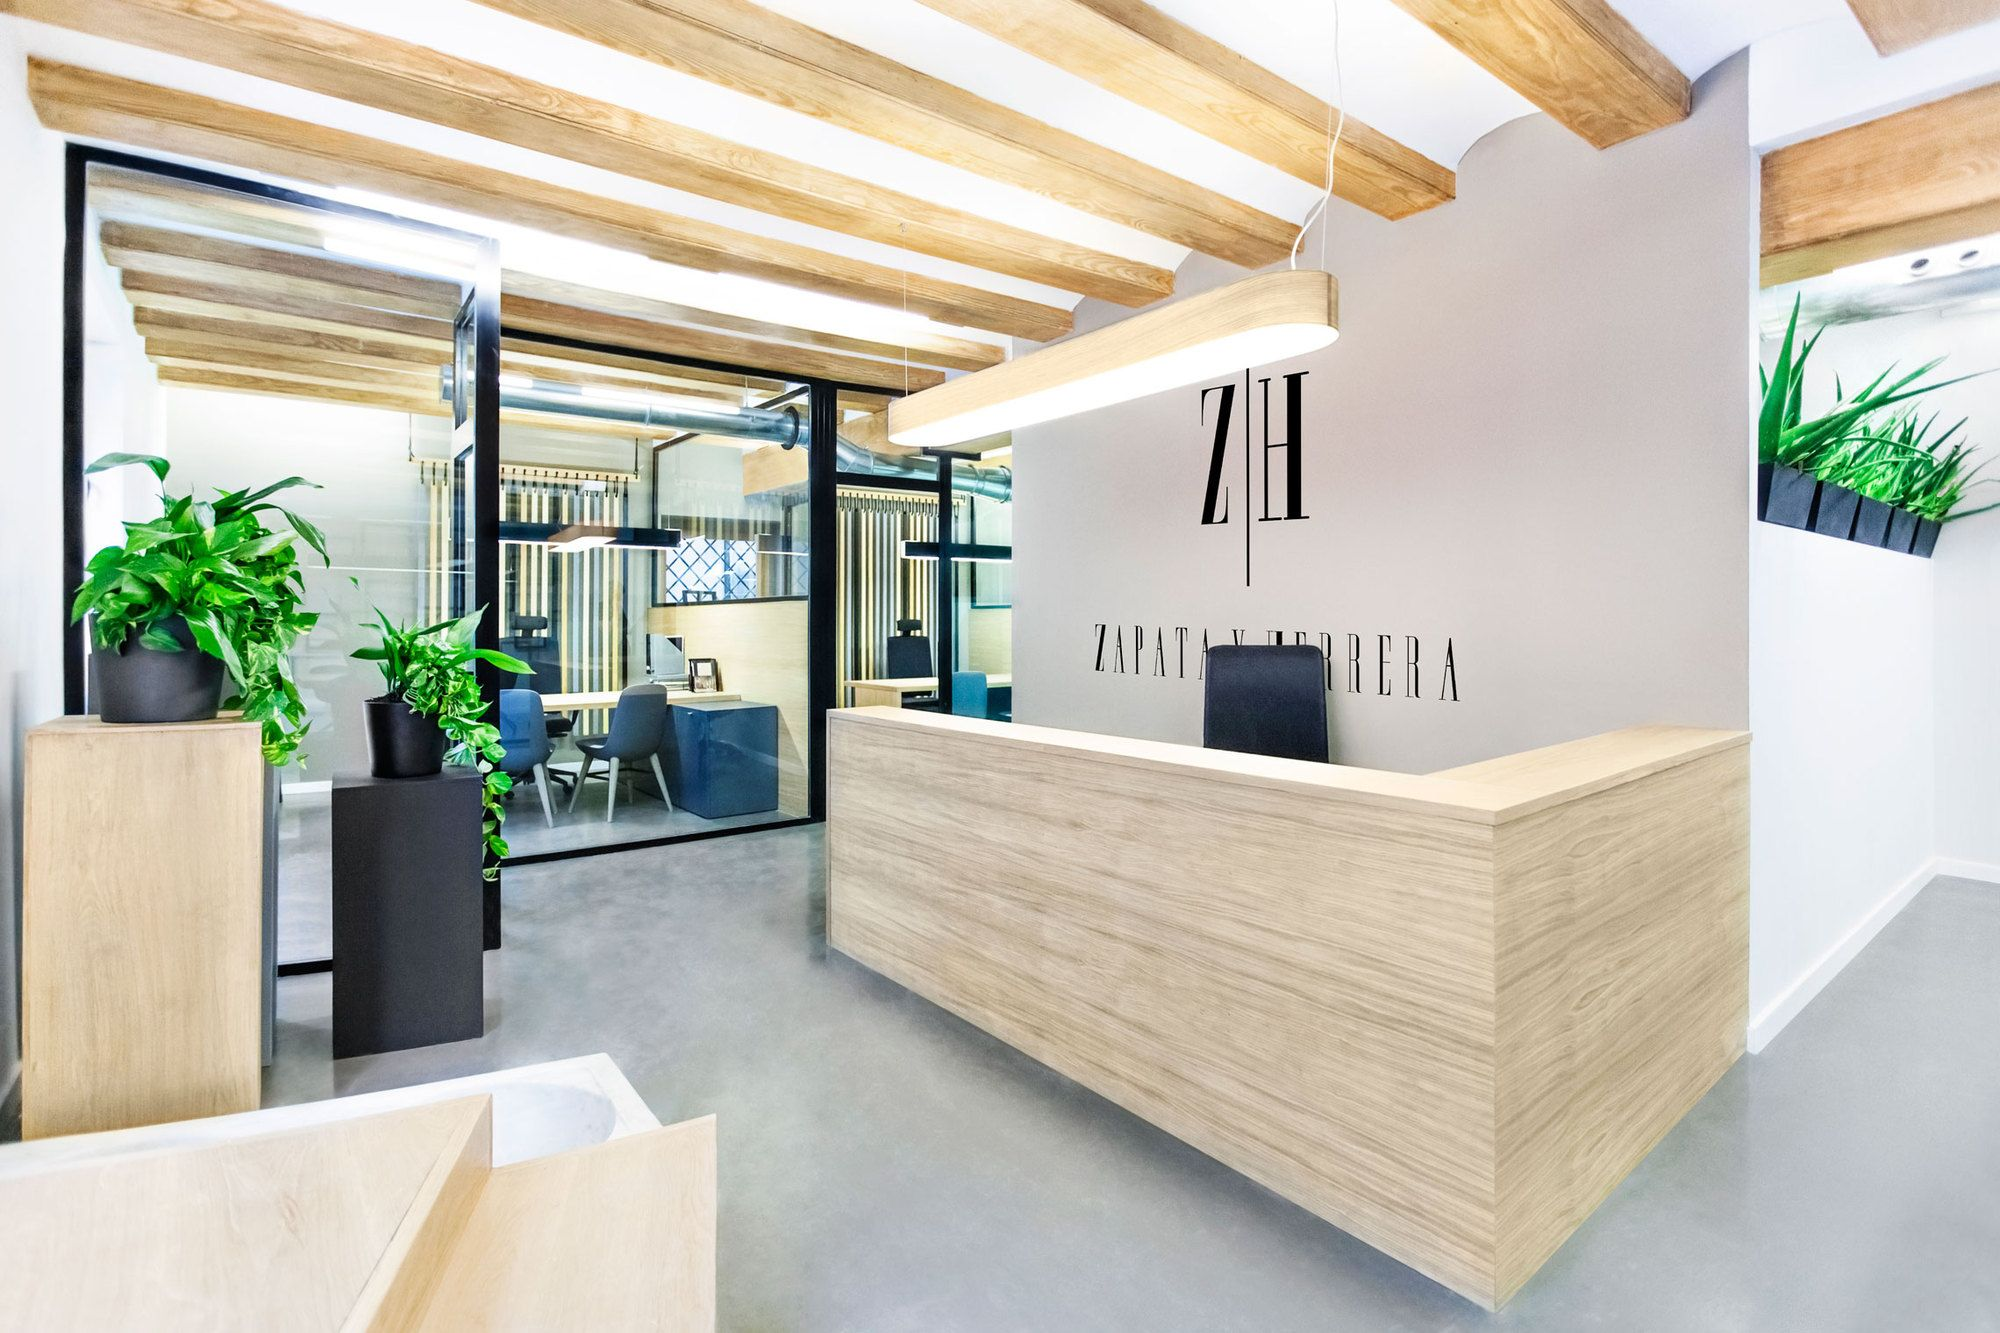 Zapata y Herrera lawyers' office | designed by Masquespacio | www.pinterest.com/seeyond/modern-office-interior-design/